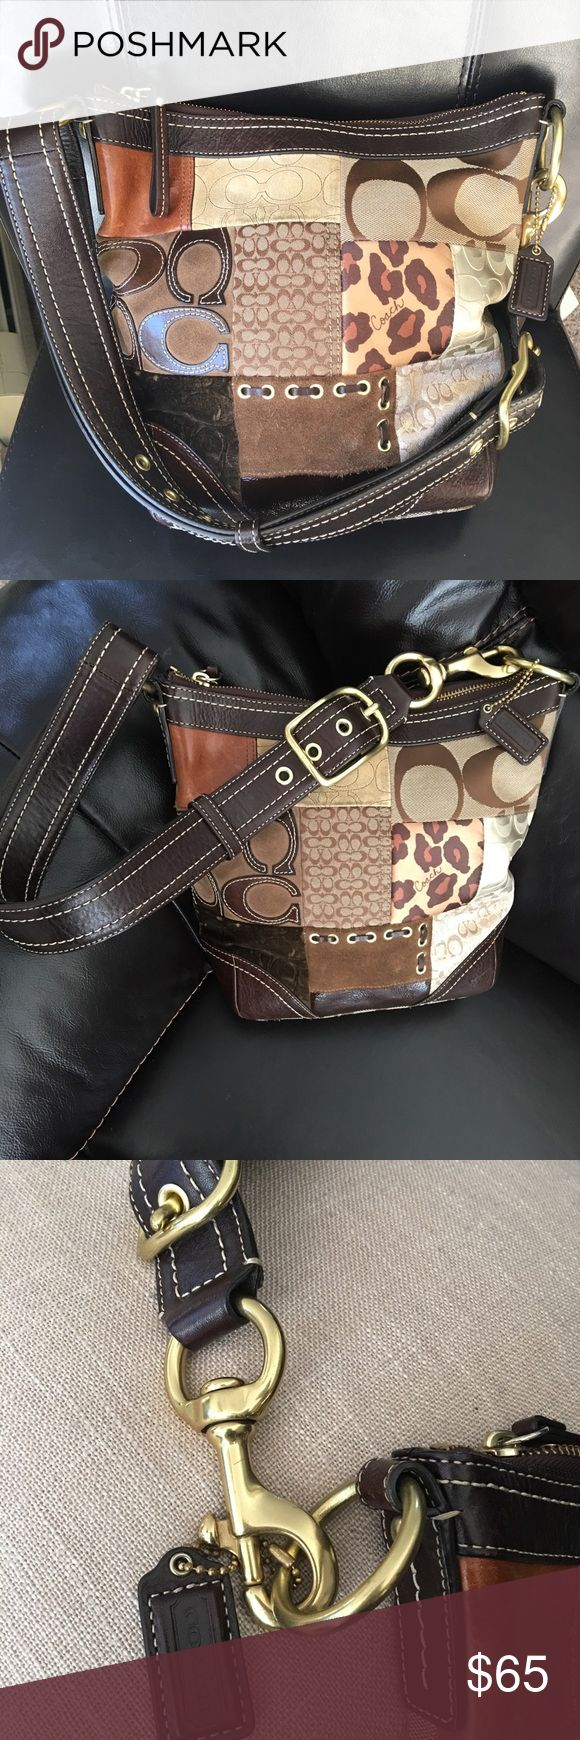 🌹Authentic COACH pocketbook Great purse in perfect condition with Gold hardware inside pocket with zipper.  Leather strap is perfect condition.  Feel free to ask questions.  Make me an offer I can't refuse.   Coach Bags Shoulder Bags